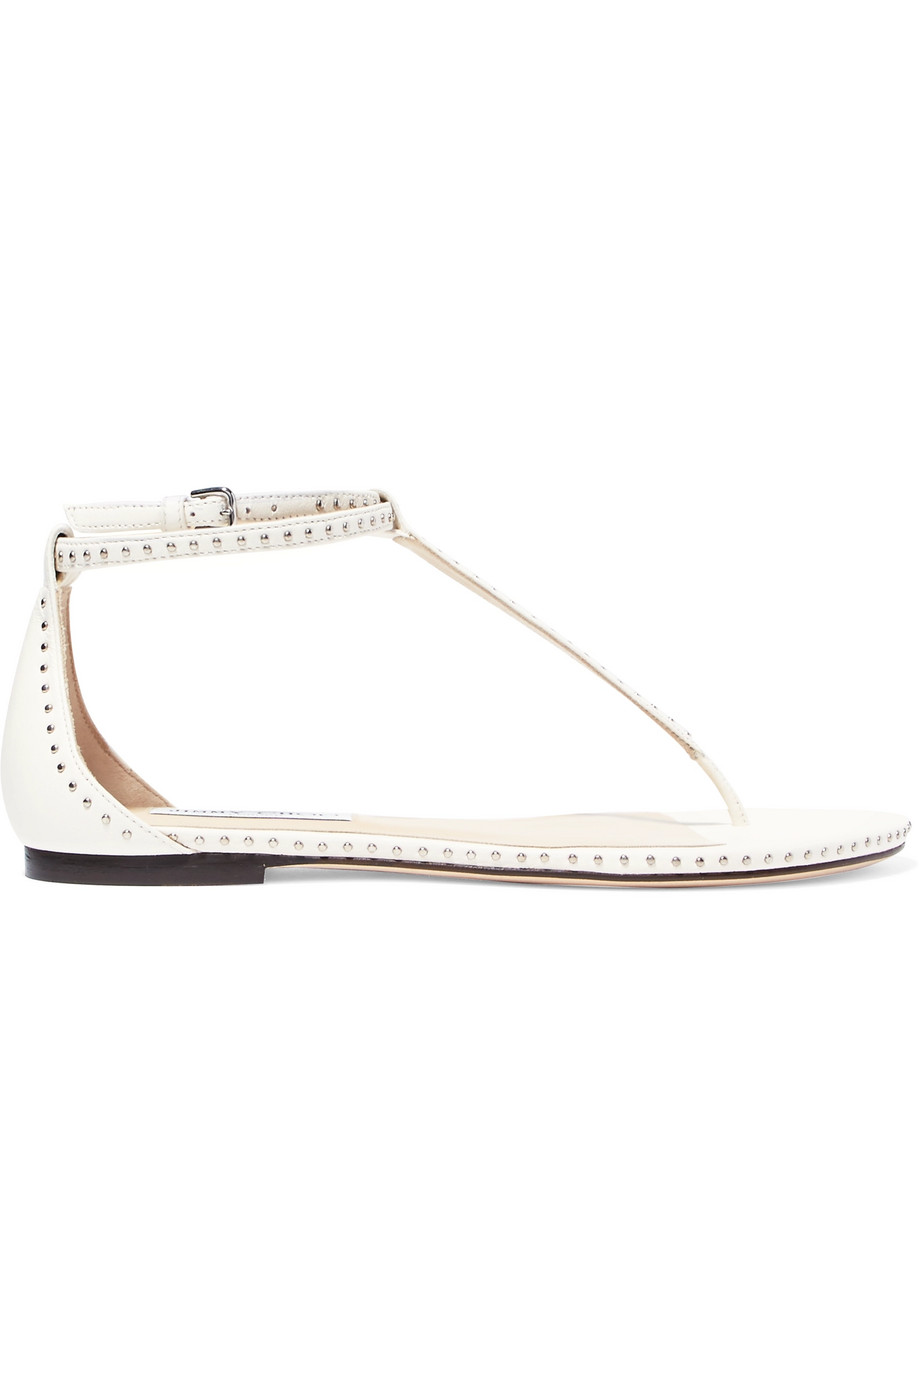 Leather sandals Jimmy Choo buy Leather sandals Jimmy Choo internet shop